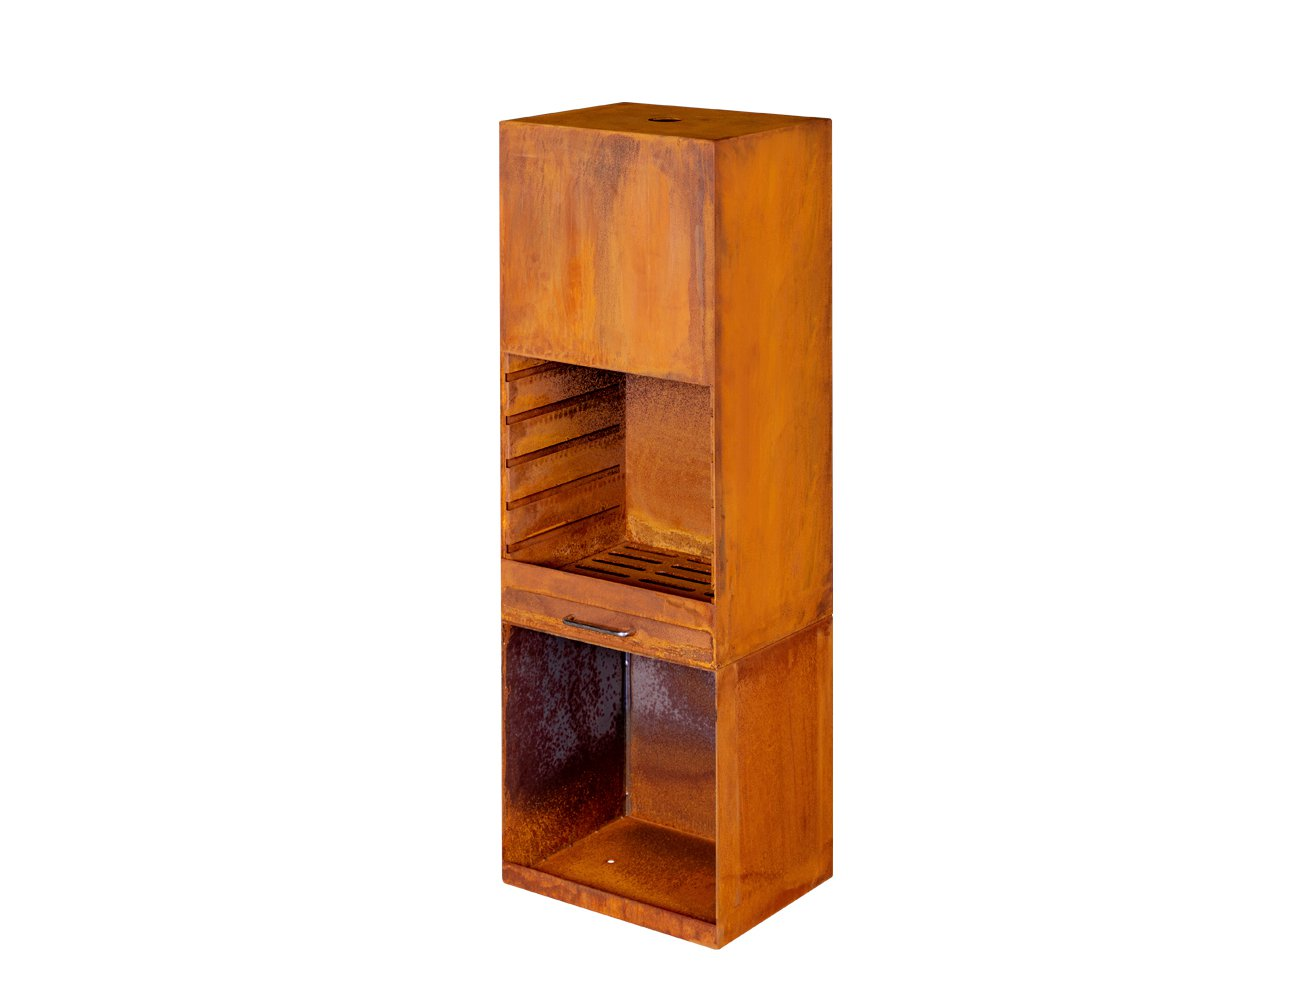 Talos Corten Steel Fireplace Tower w/ Wood Storage